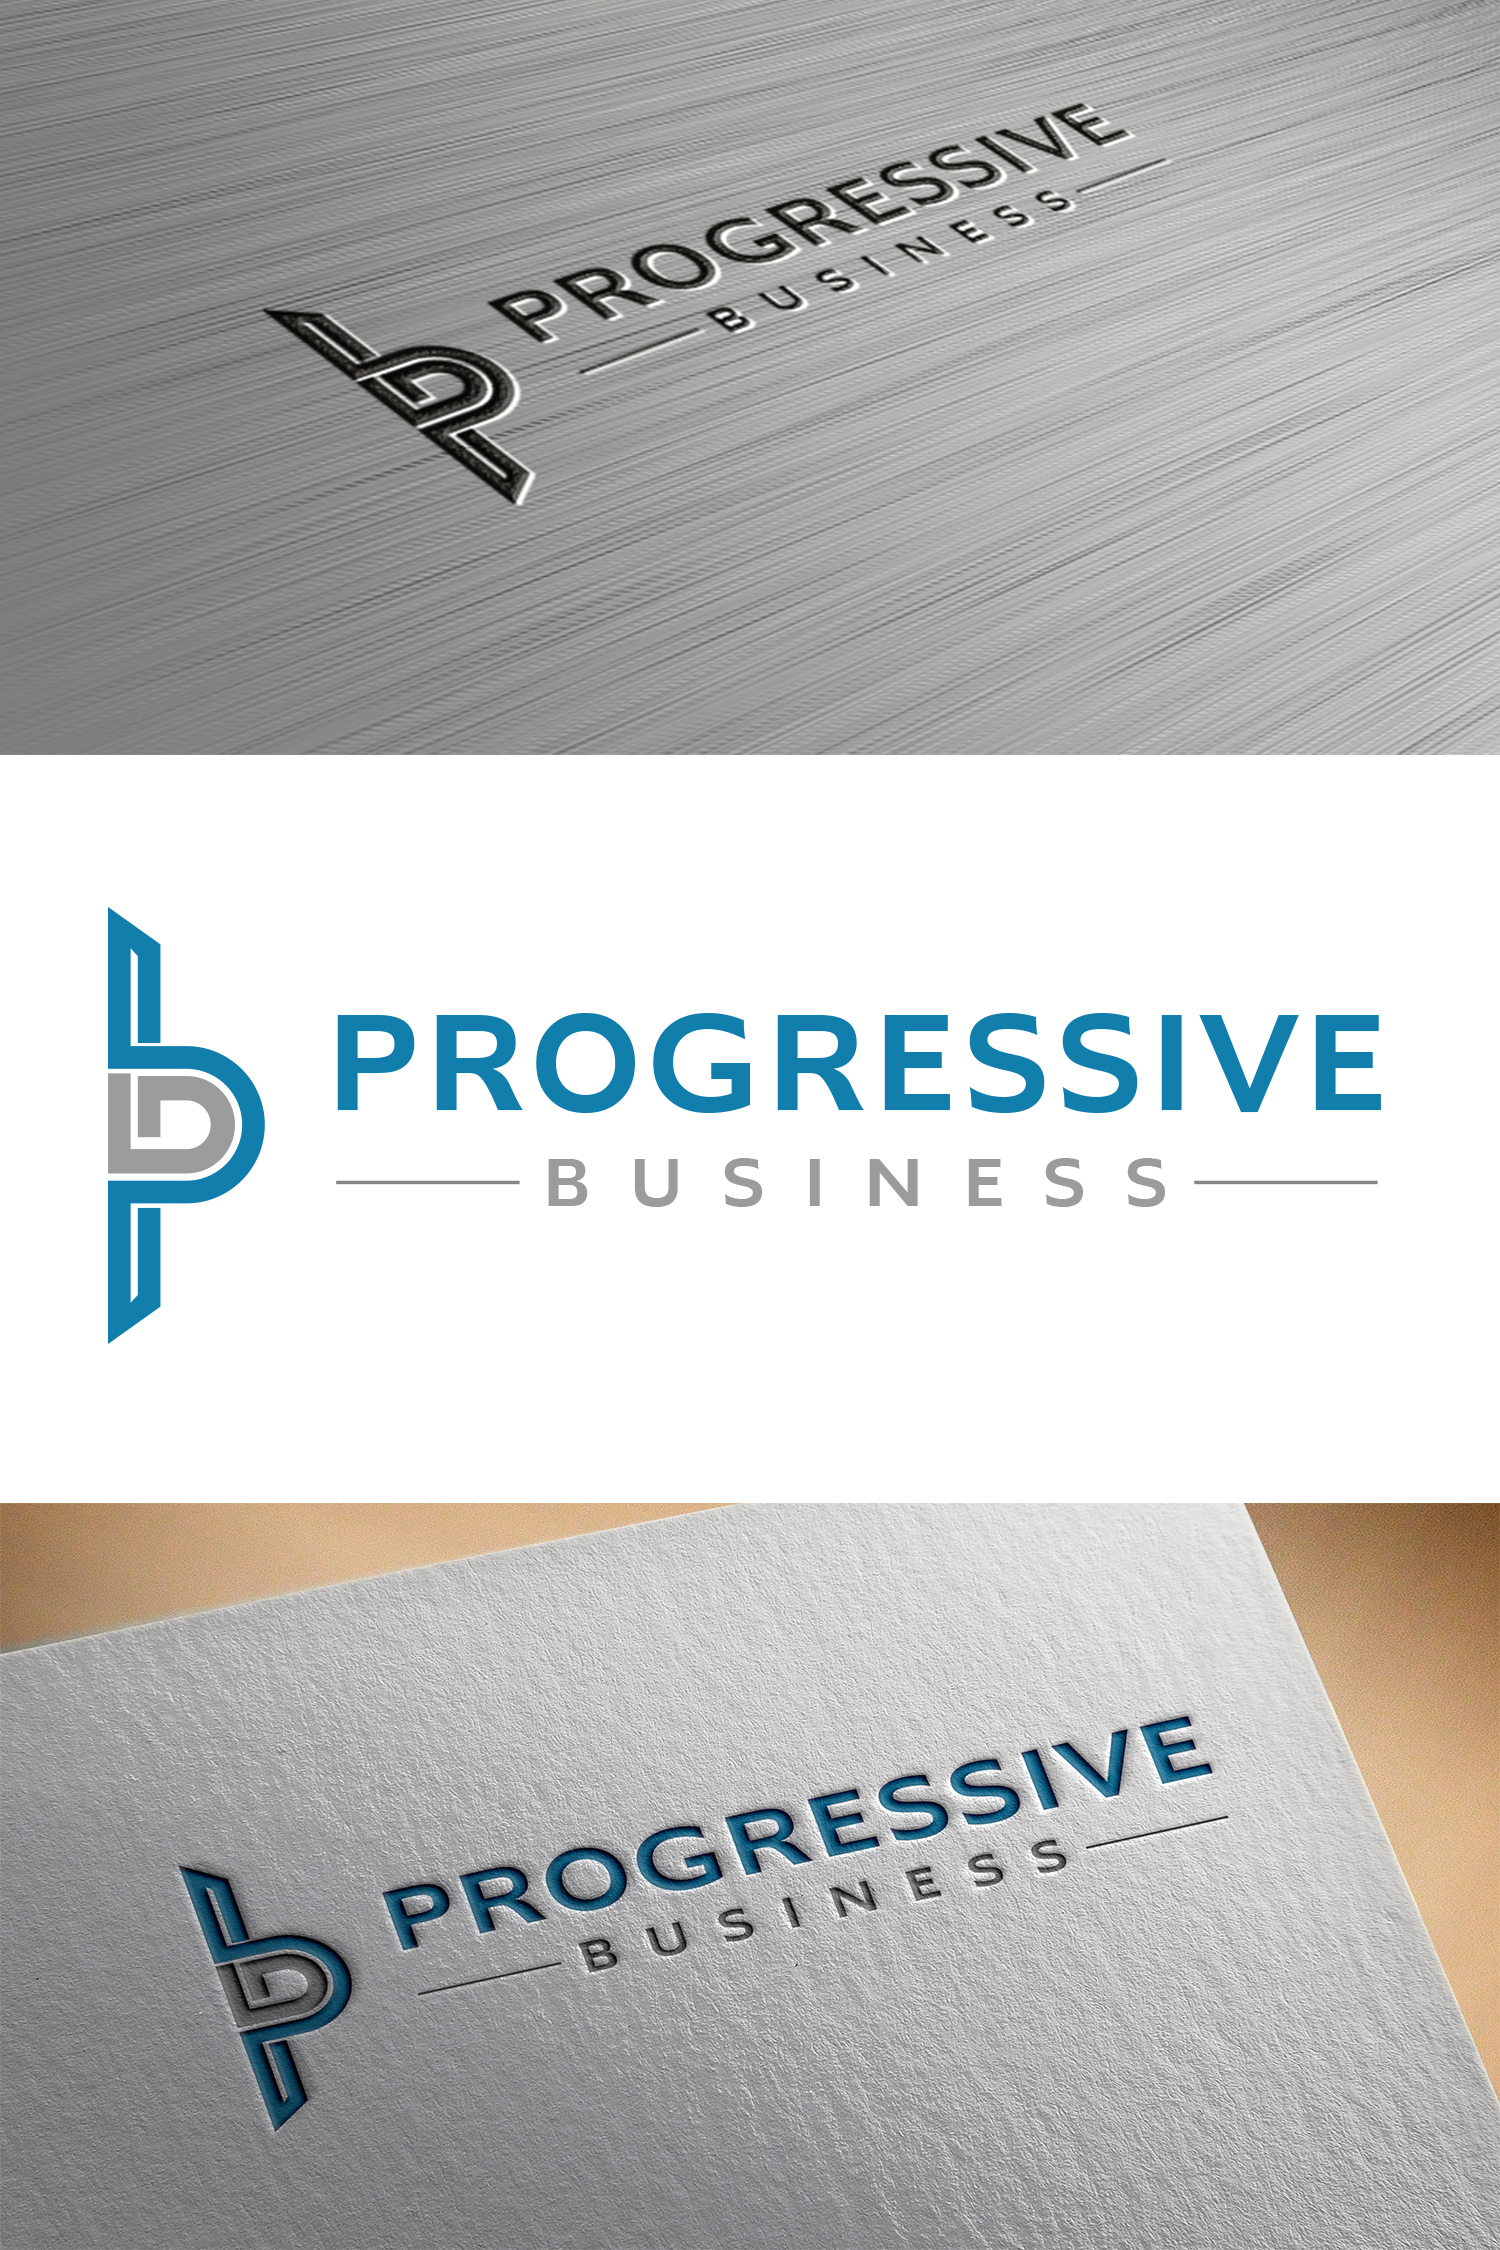 Logo Design by Umair ahmed Iqbal - Entry No. 81 in the Logo Design Contest Captivating Logo Design for Progressive Business.